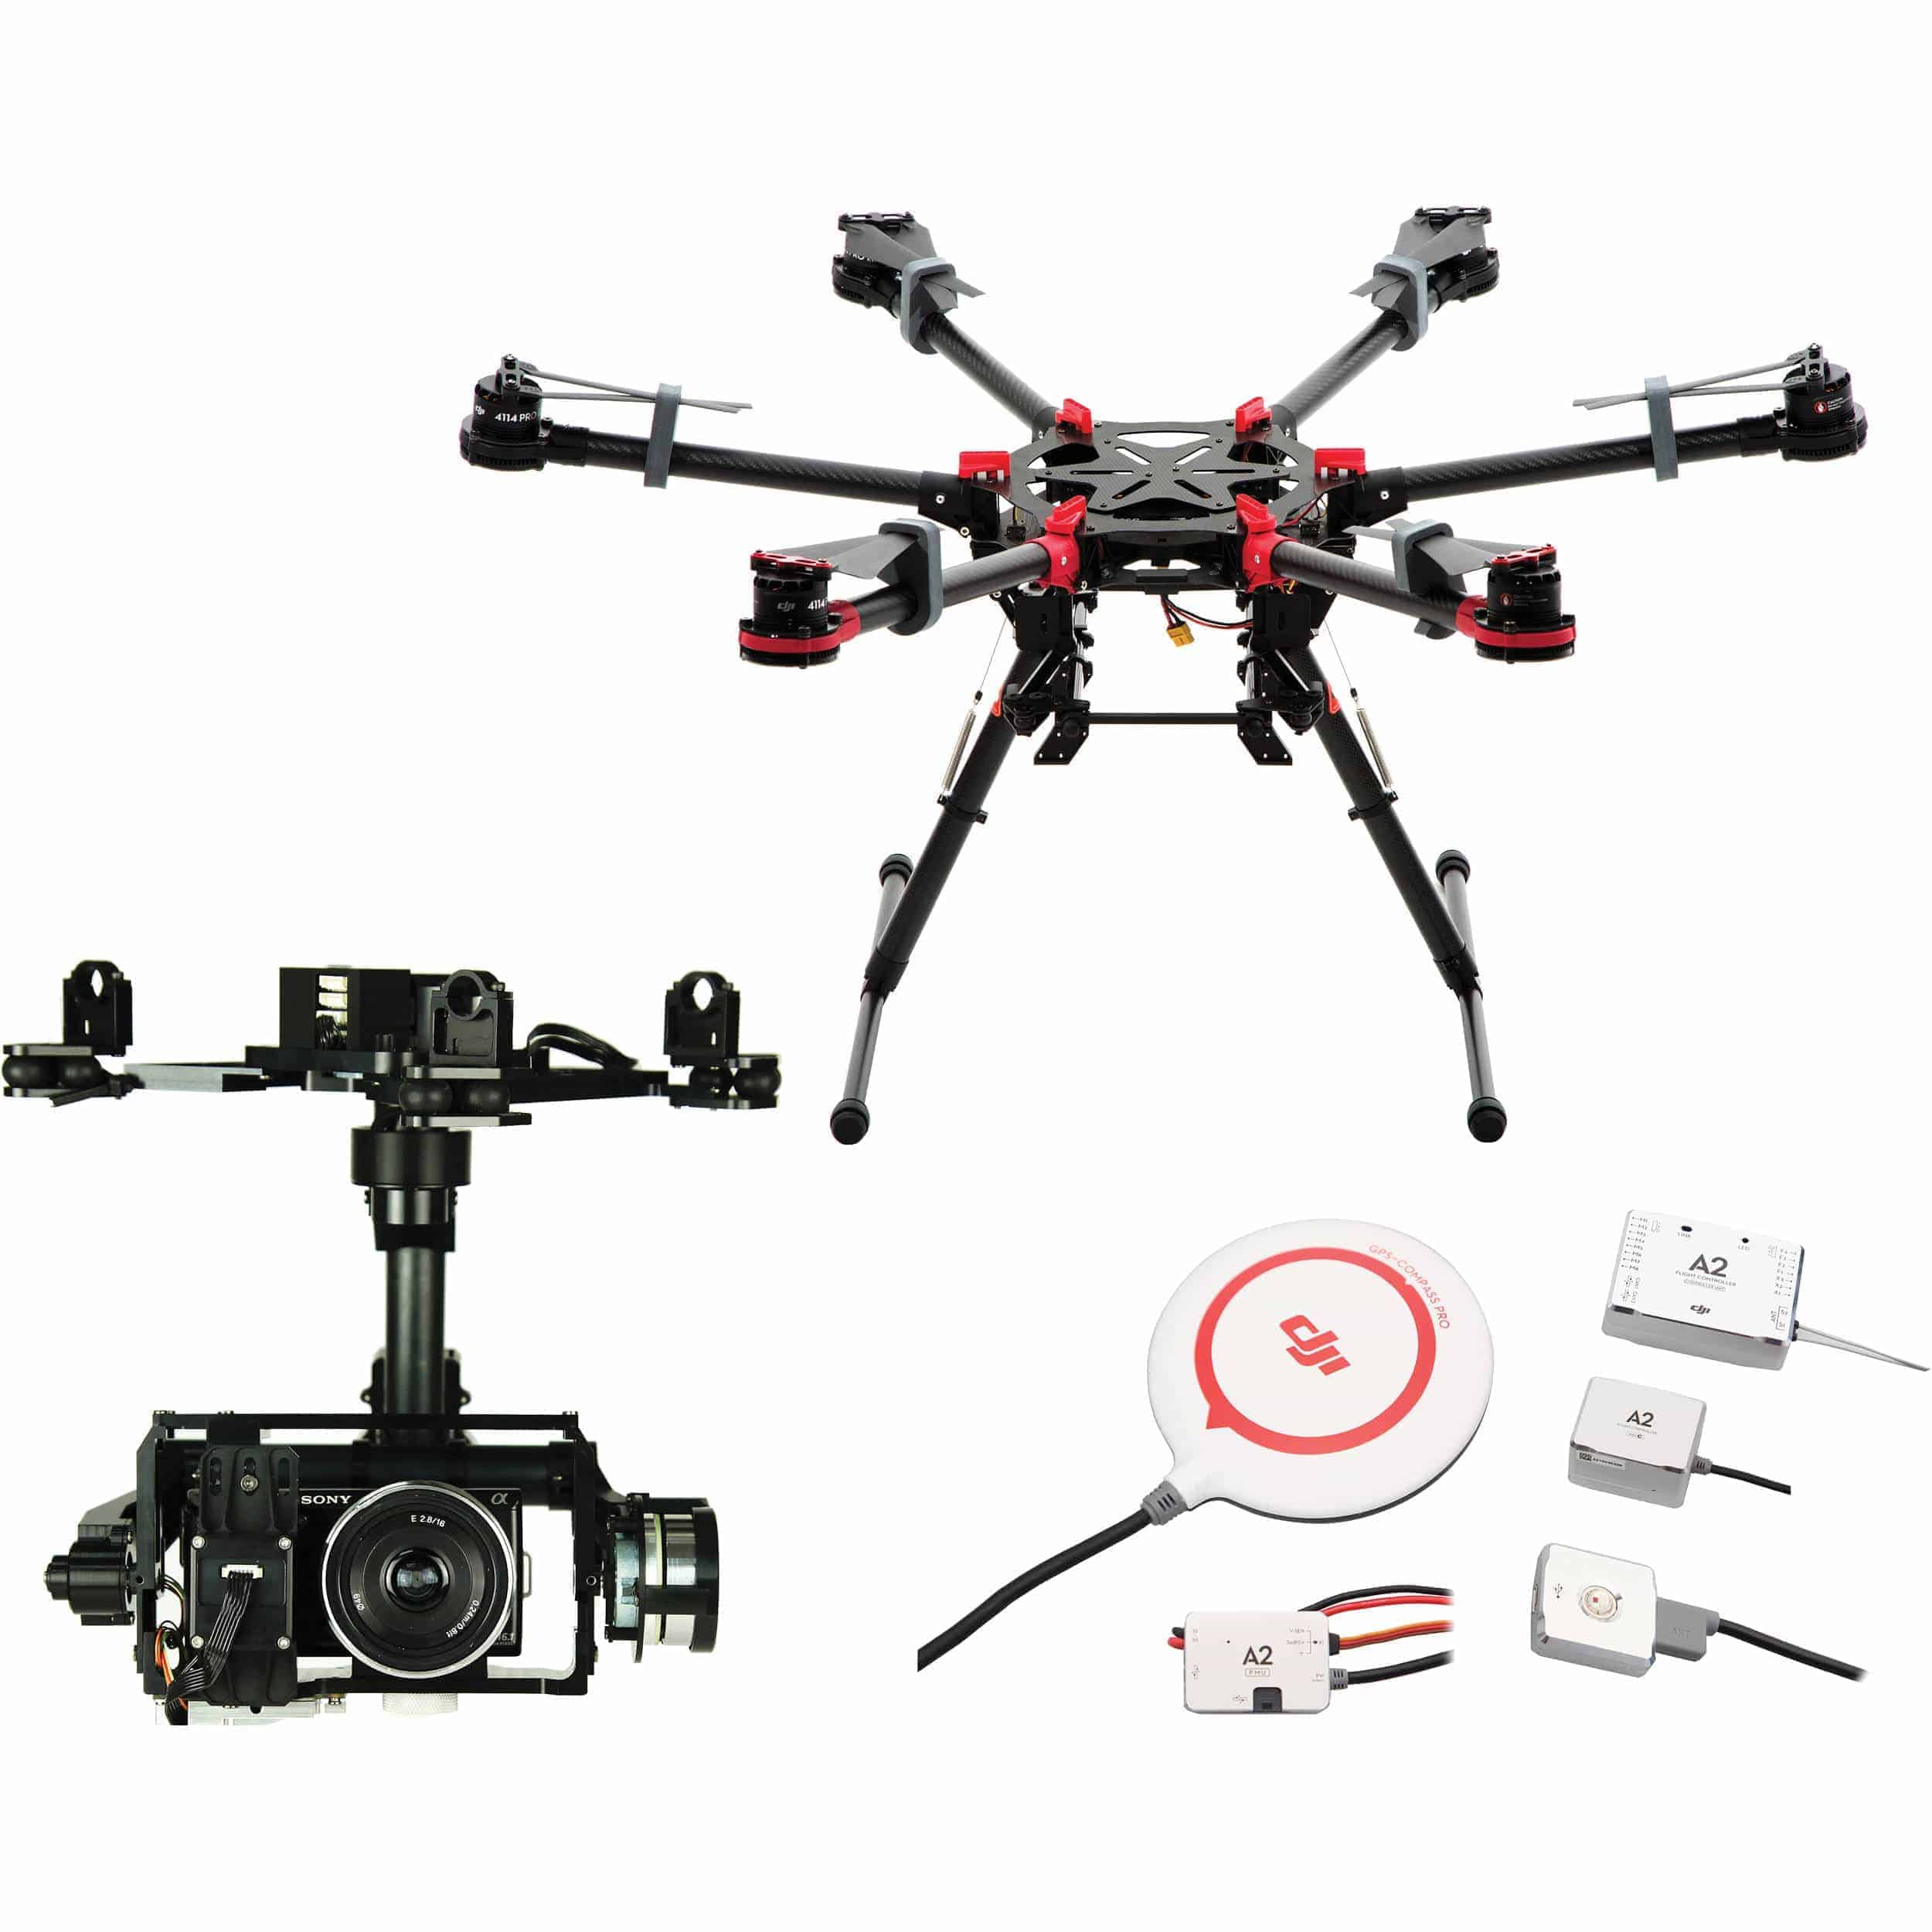 Dji Spreading Wings S900 Viper Drones